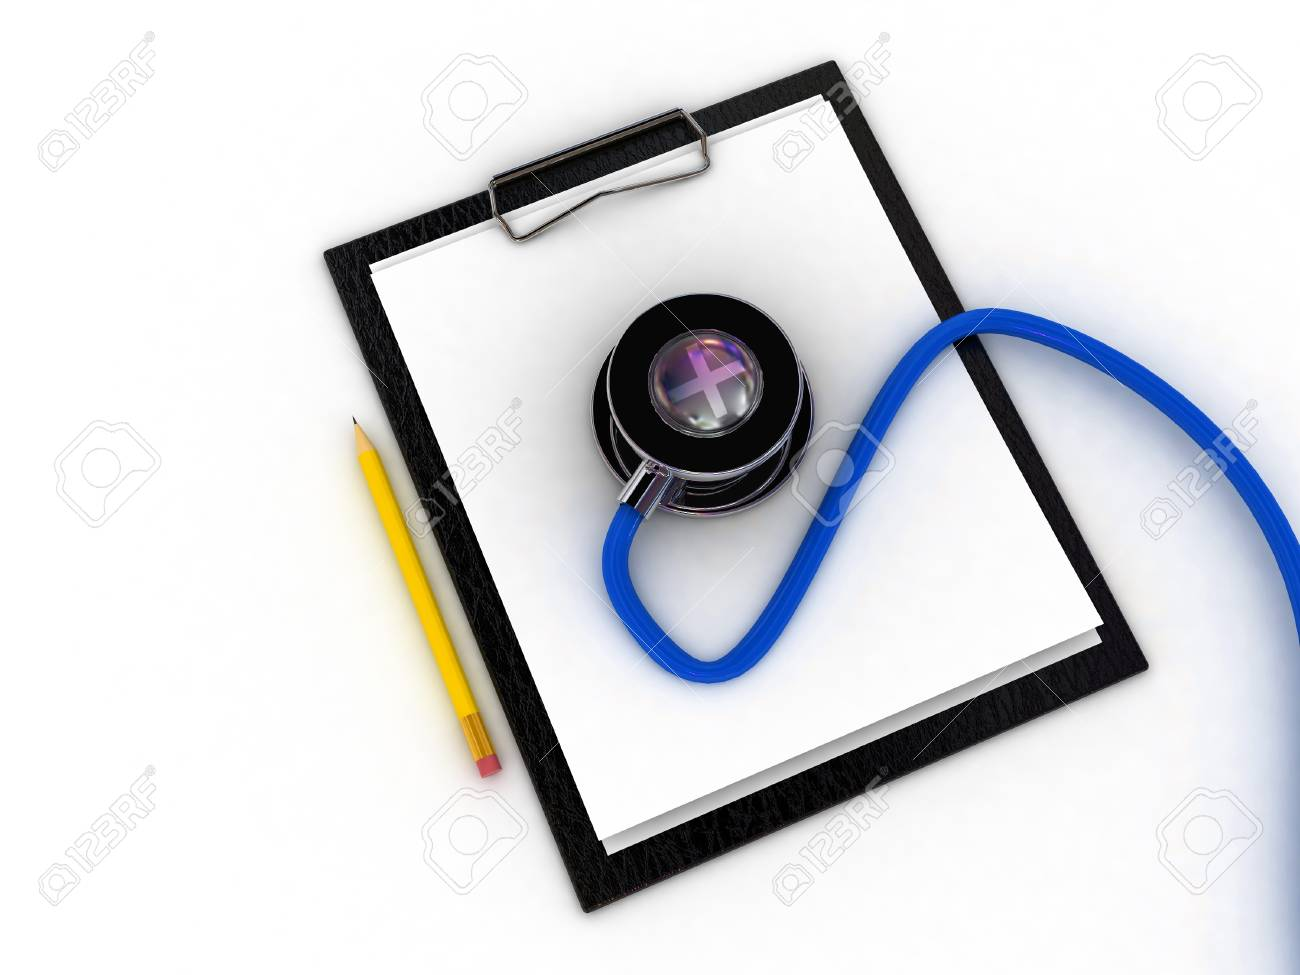 Medical clipboard and stethoscope isolated on white background Stock Photo - 11447899